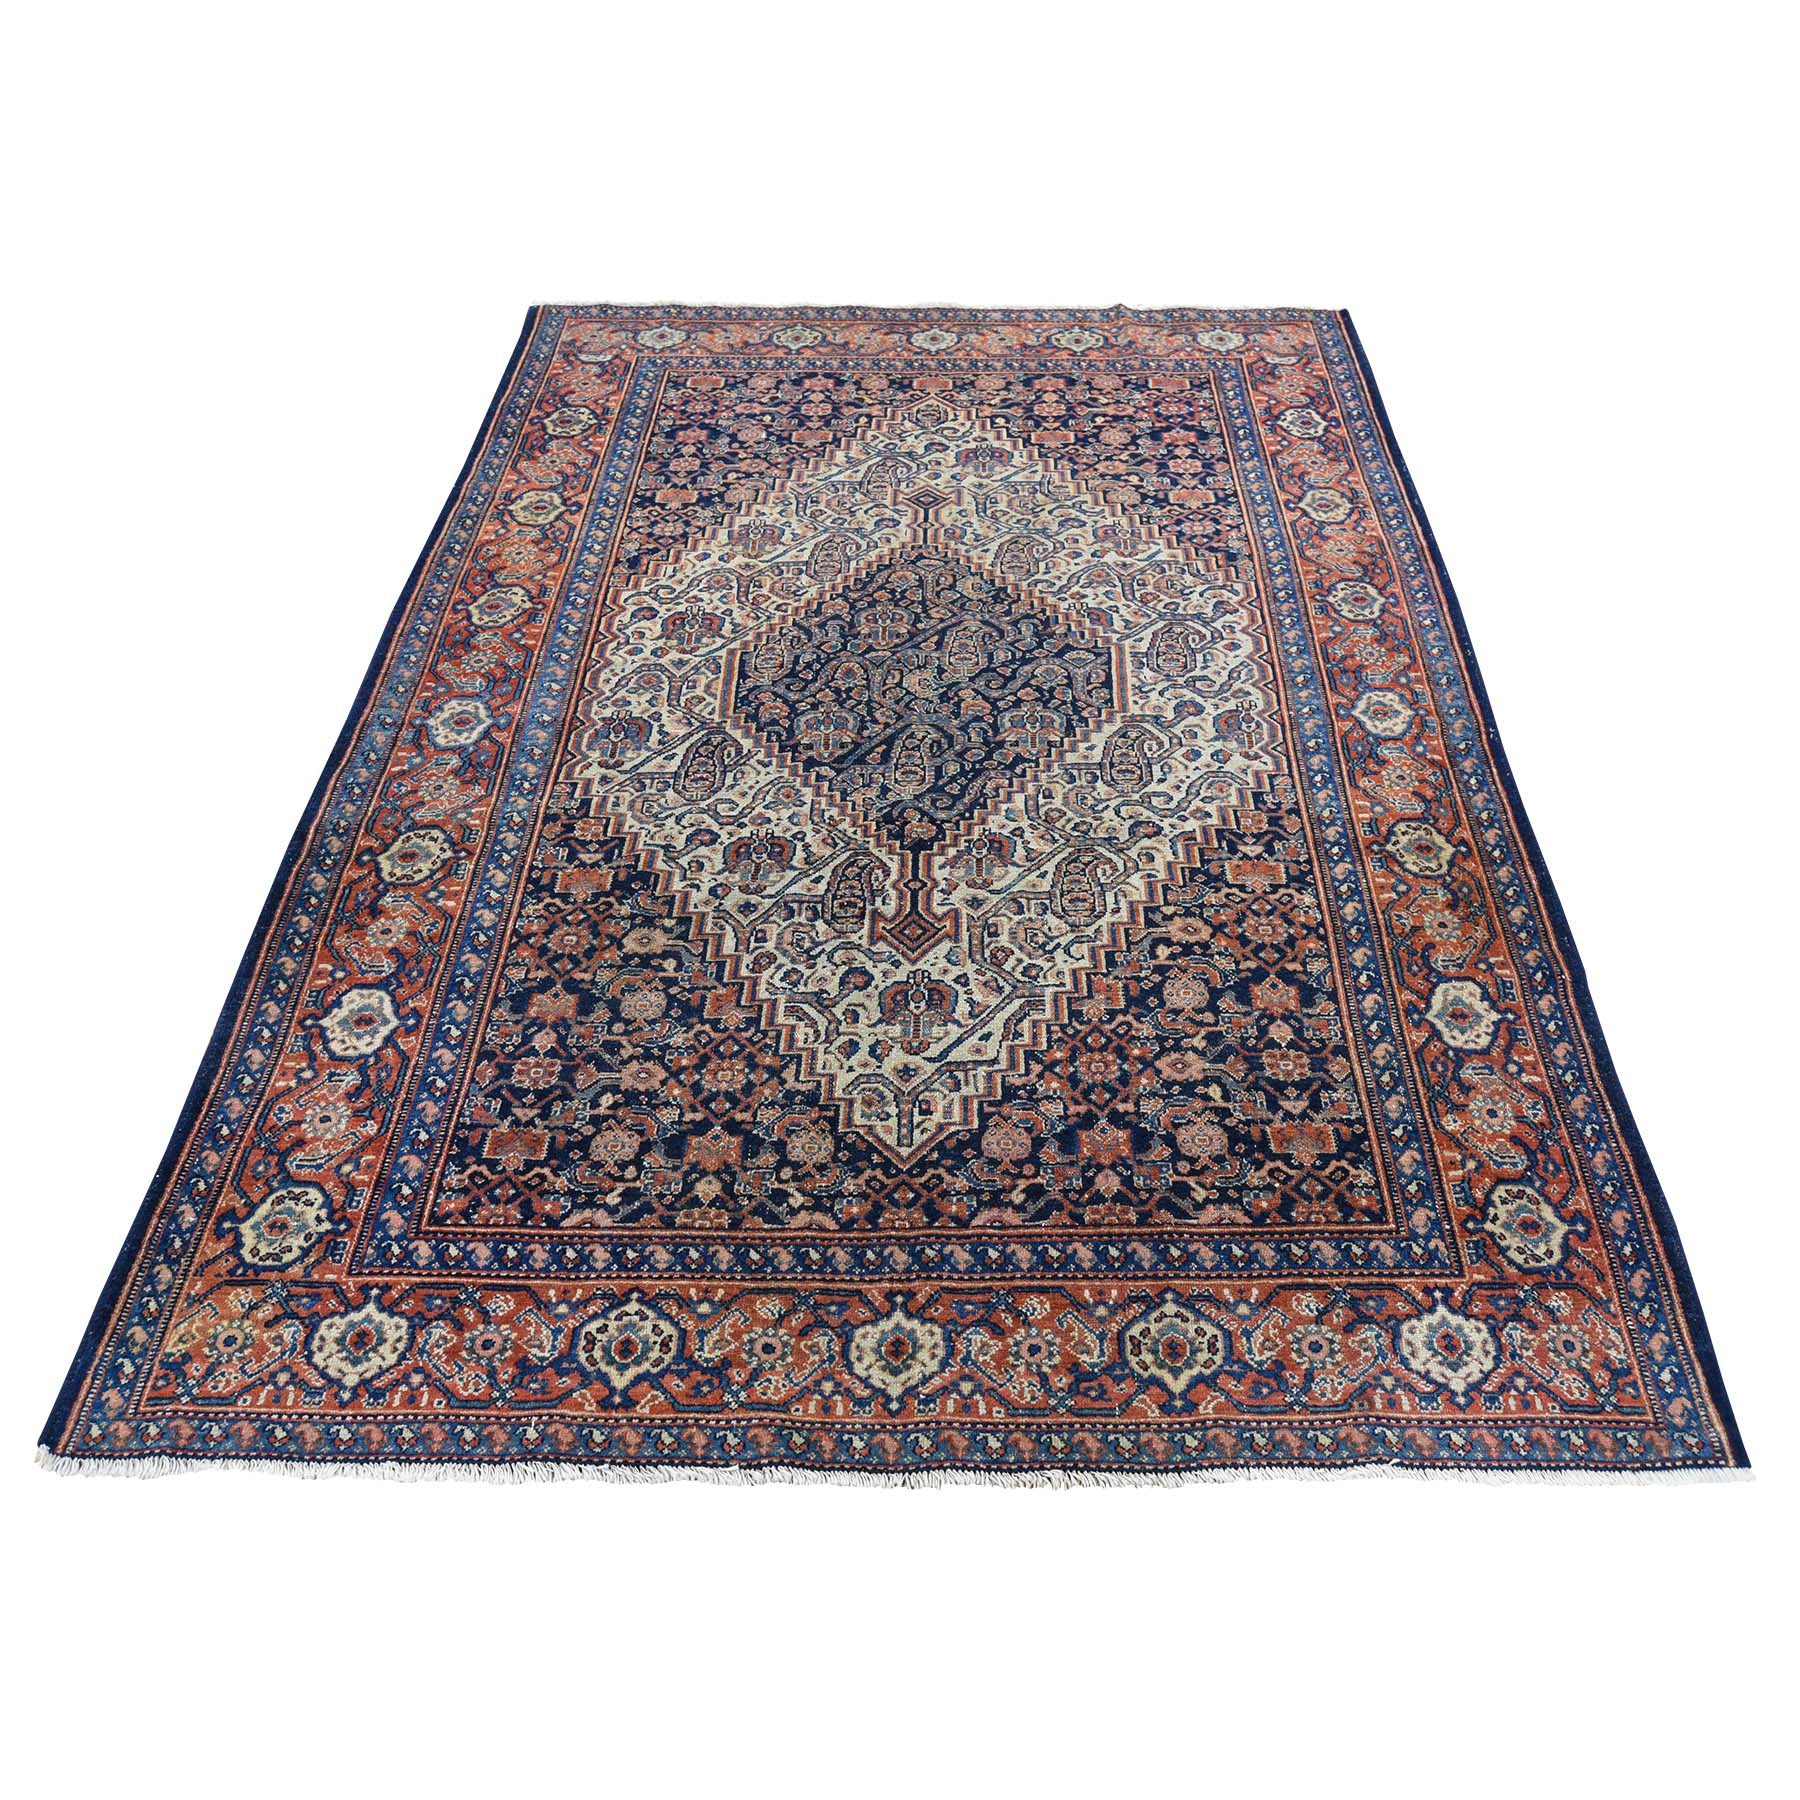 4-4 x6-6  Antique Persian Senneh Exc Cond Pure Wool Hand-Knotted Oriental Rug